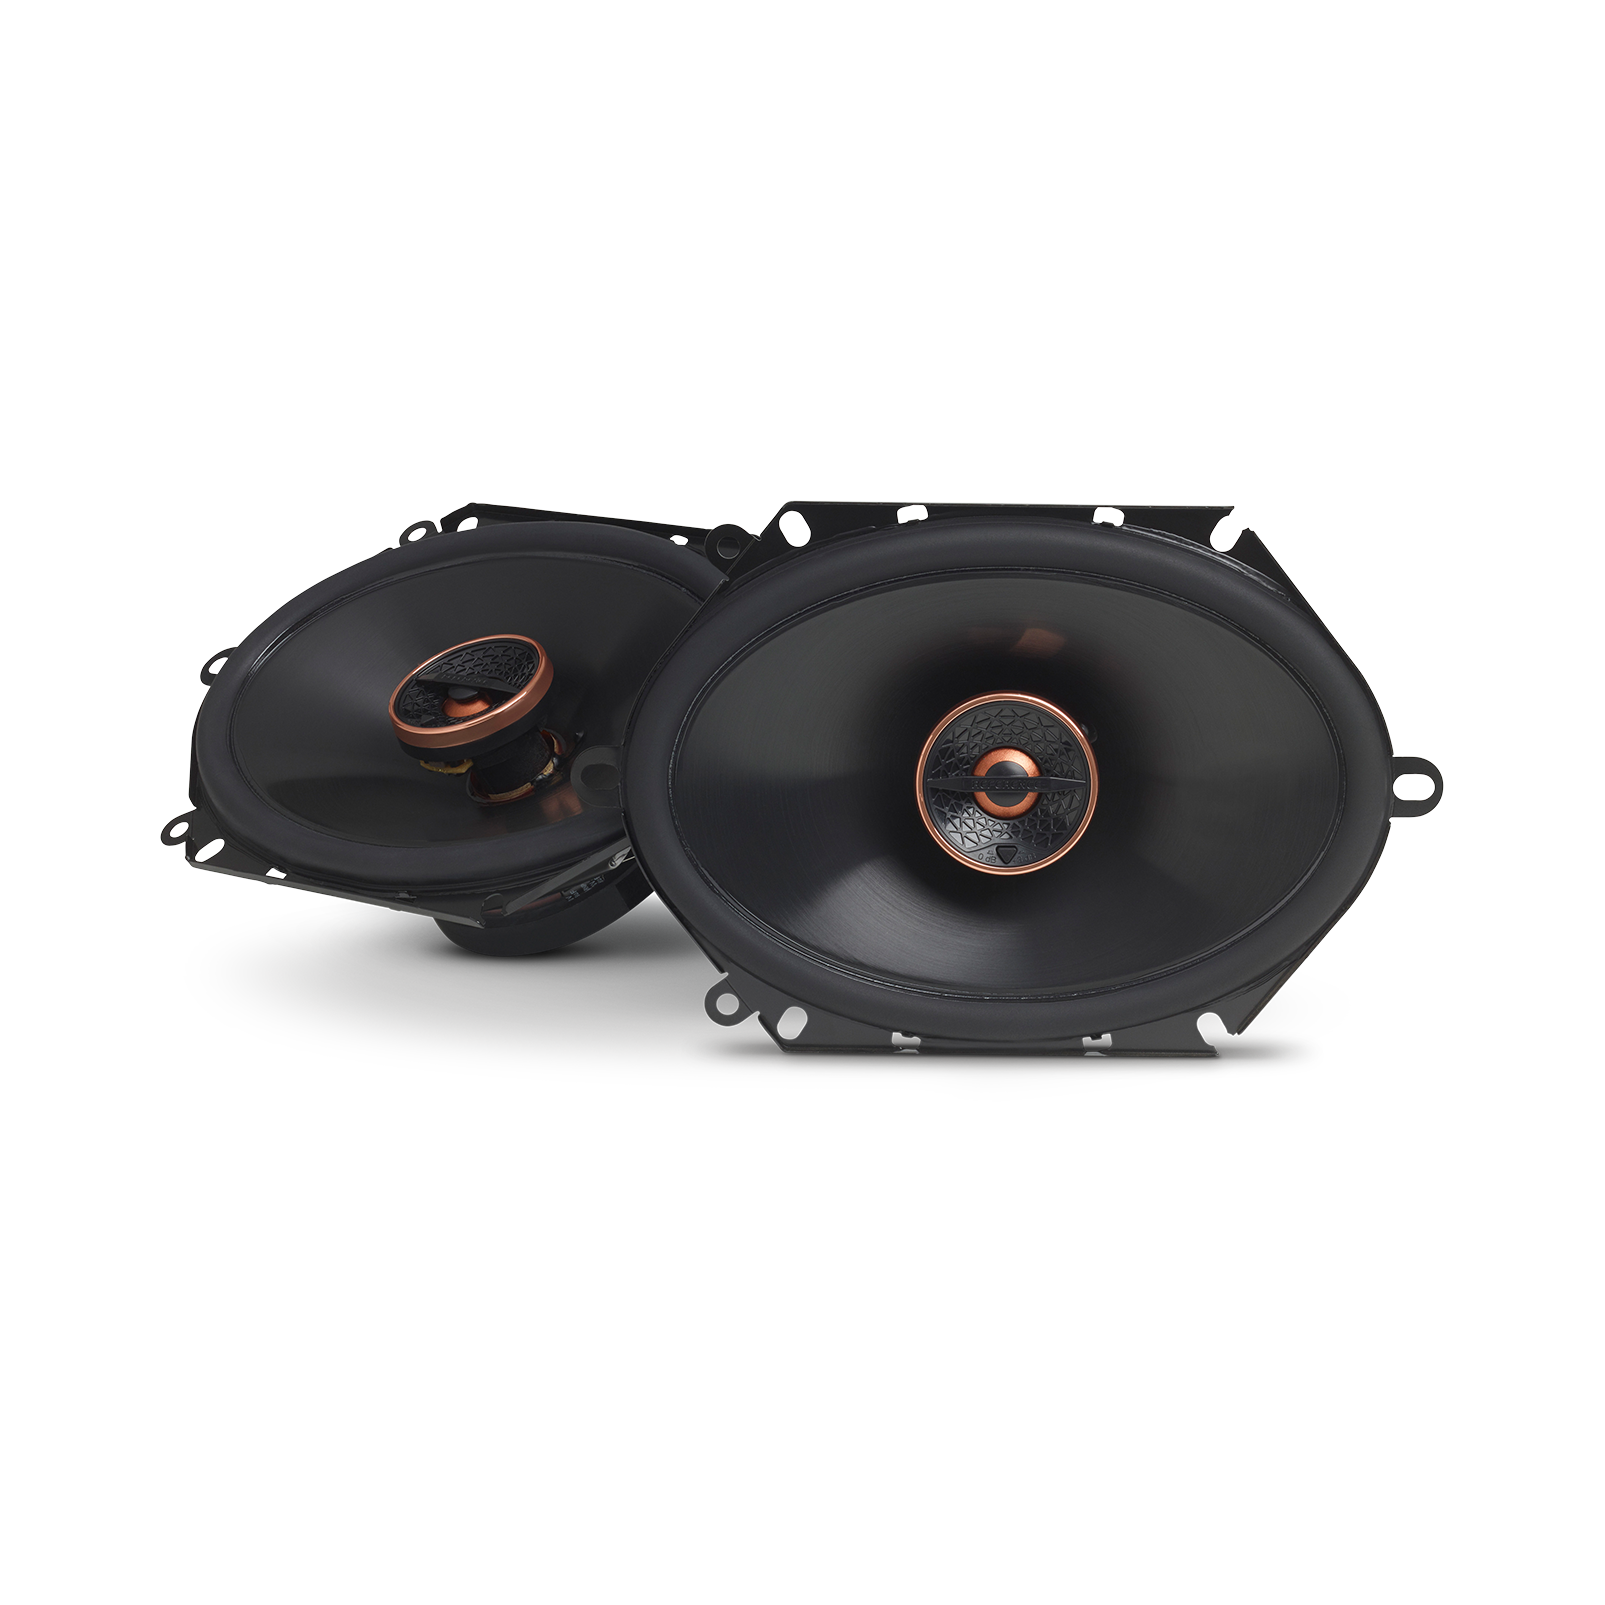 "Reference 8632cfx - Black - 6"" x 8"" (152mm x 203mm) coaxial car speaker, 180W - Hero"